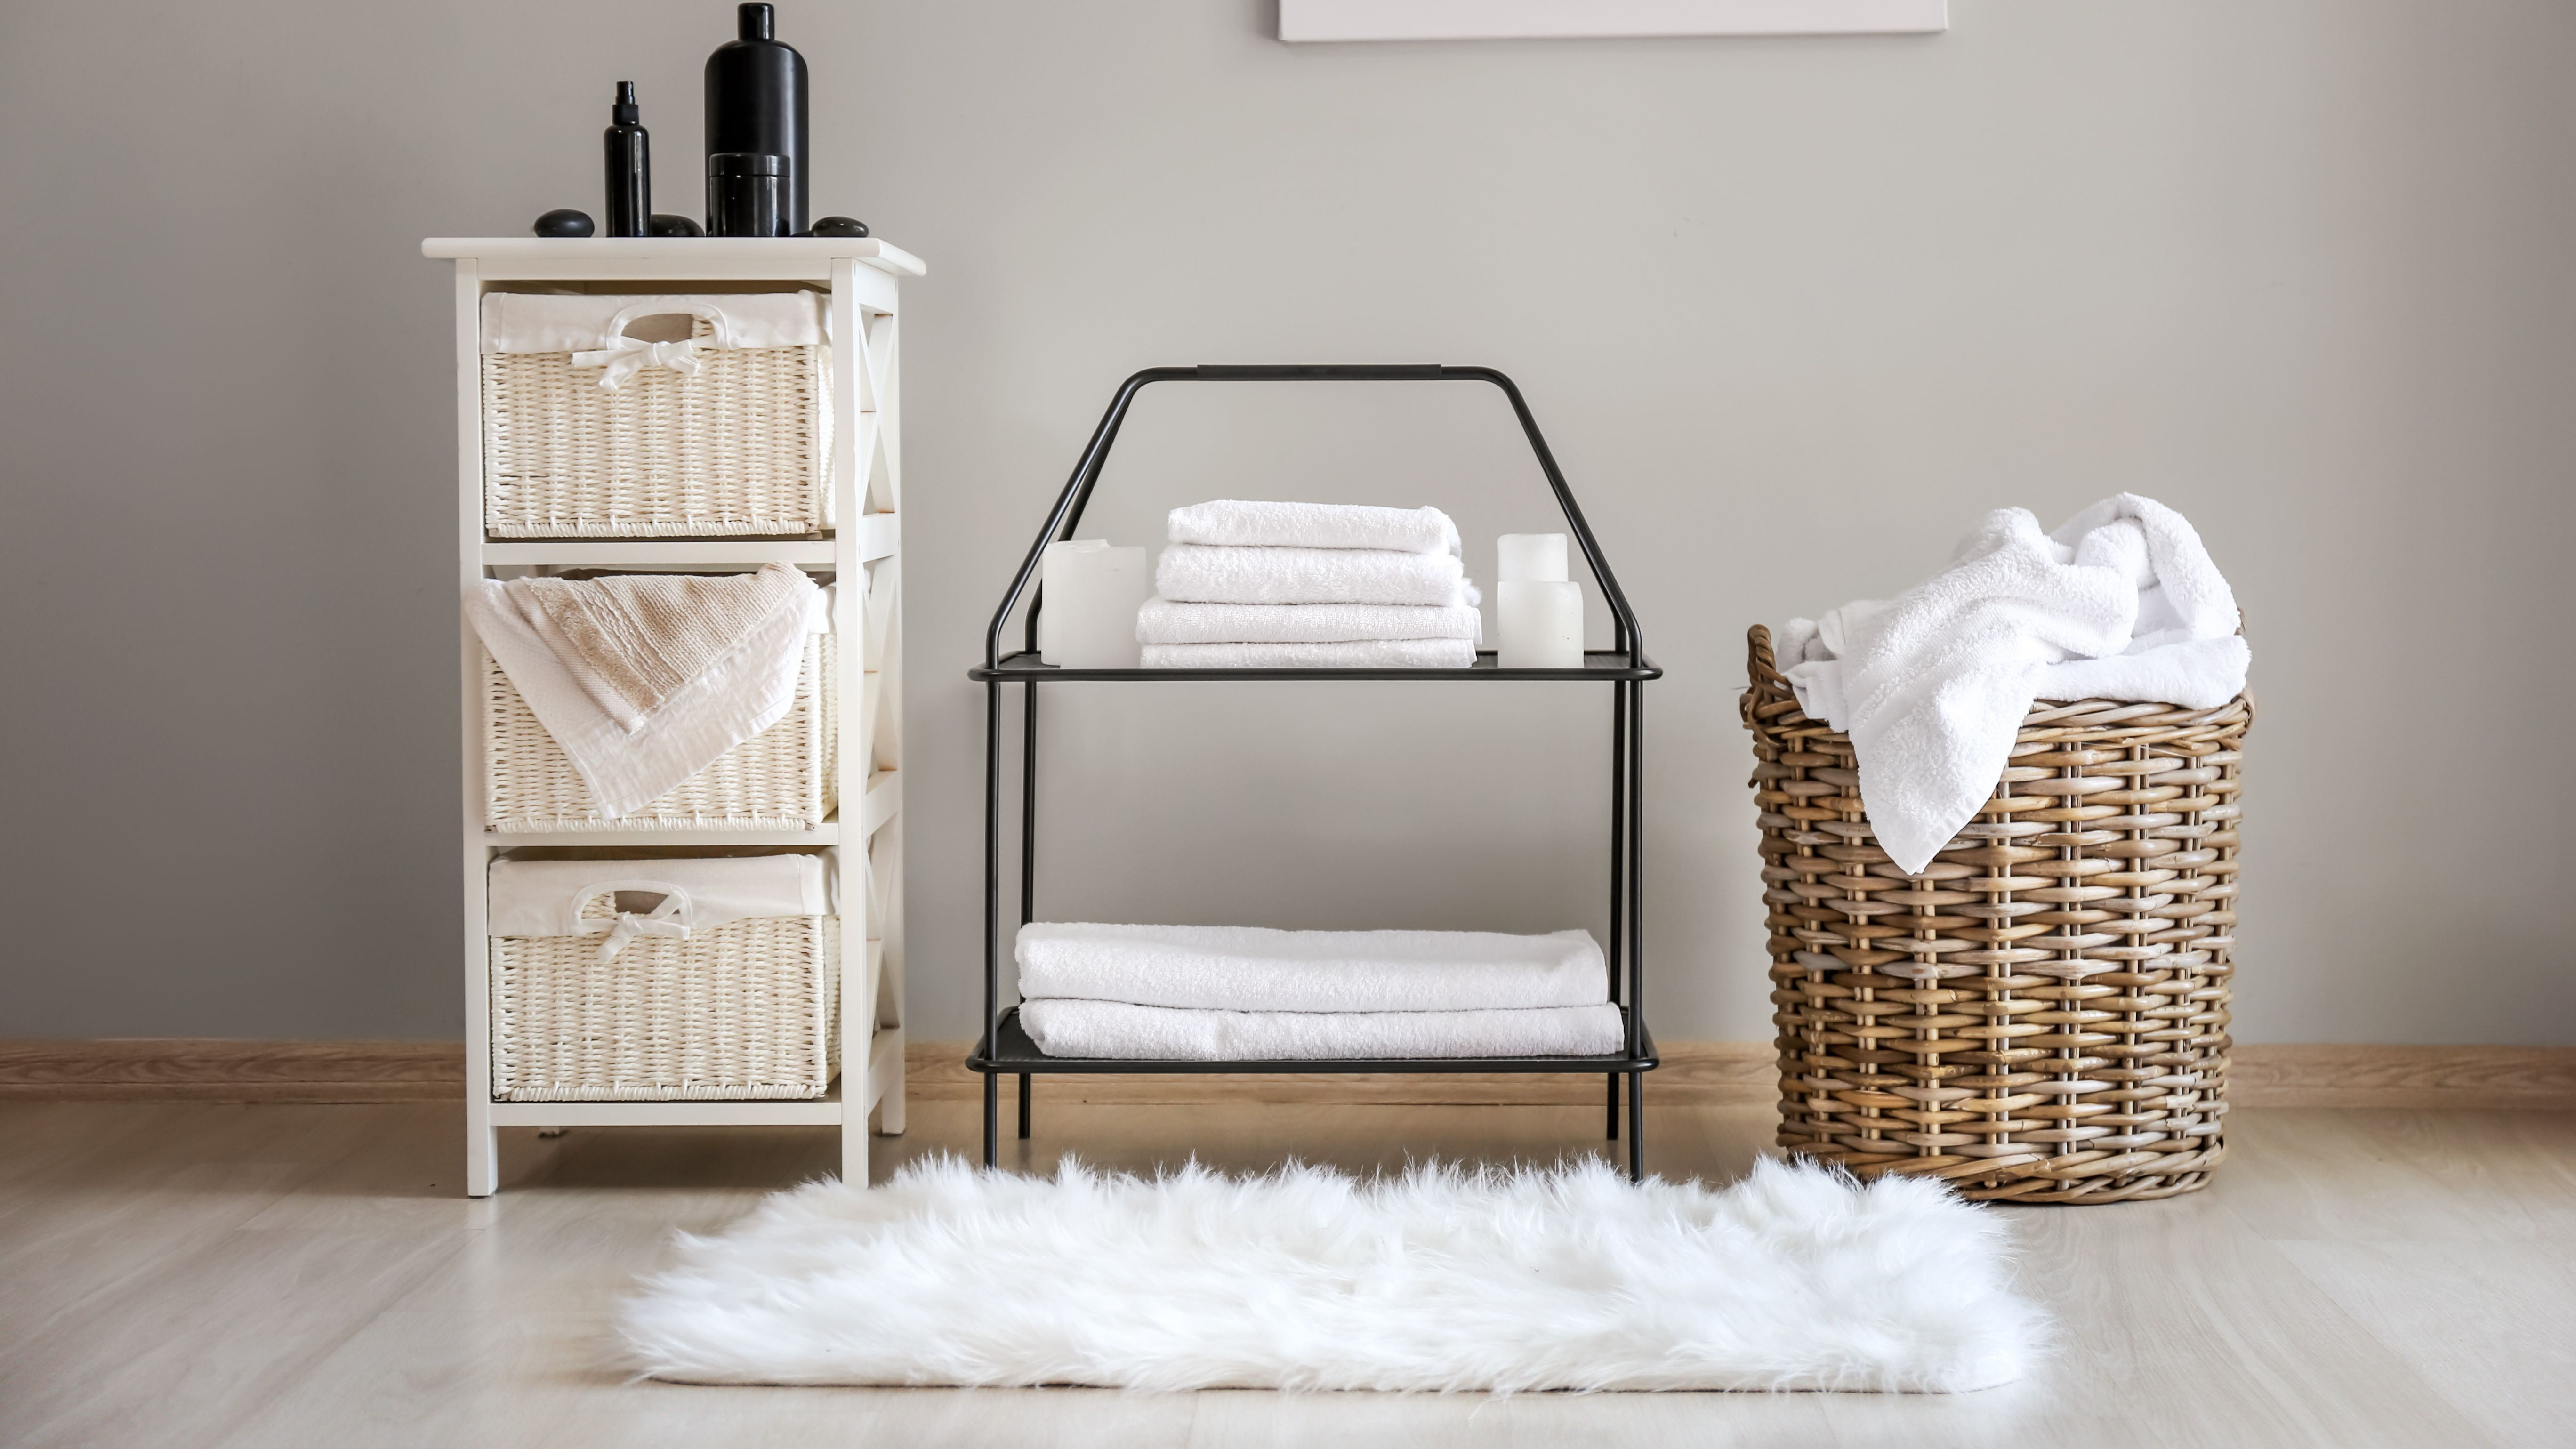 Shower shelf and basket buying guide